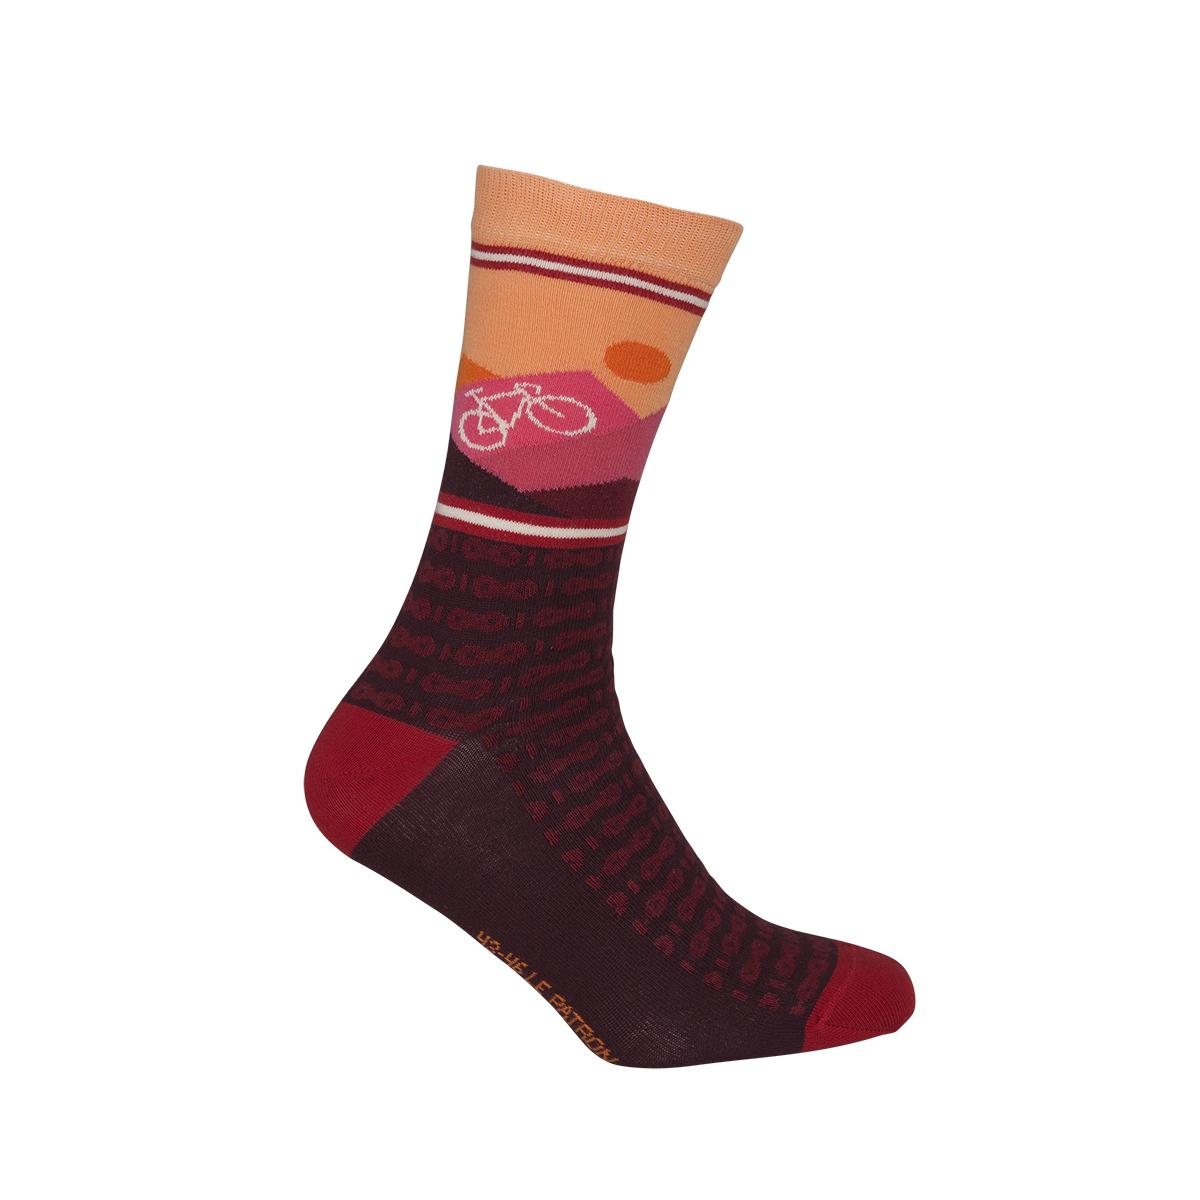 Le Patron Casual sokken Bordeaux Roze / mountain socks bordeaux